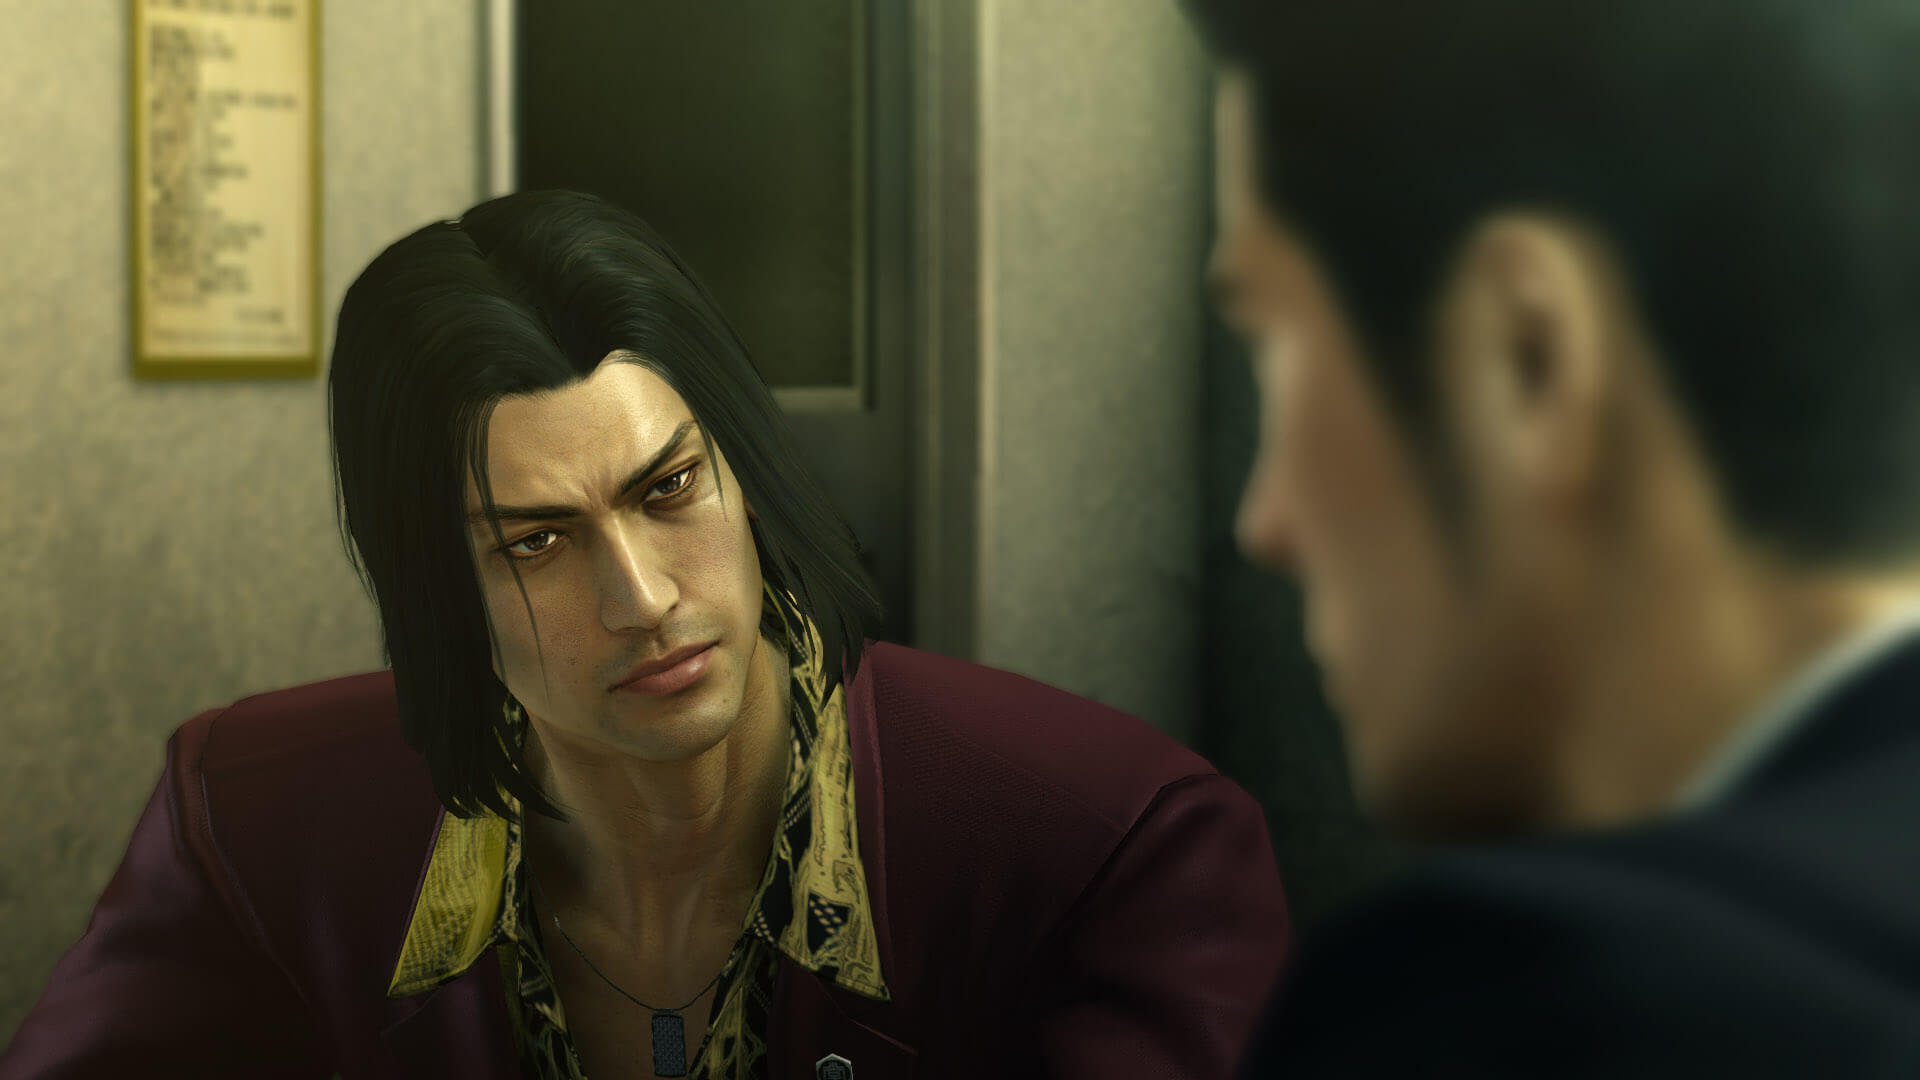 Yakuza 0 Review Deadly Serious Deliciously Silly Dsogaming Validity of electrode placement at fpz to detect alpha wave. yakuza 0 review deadly serious